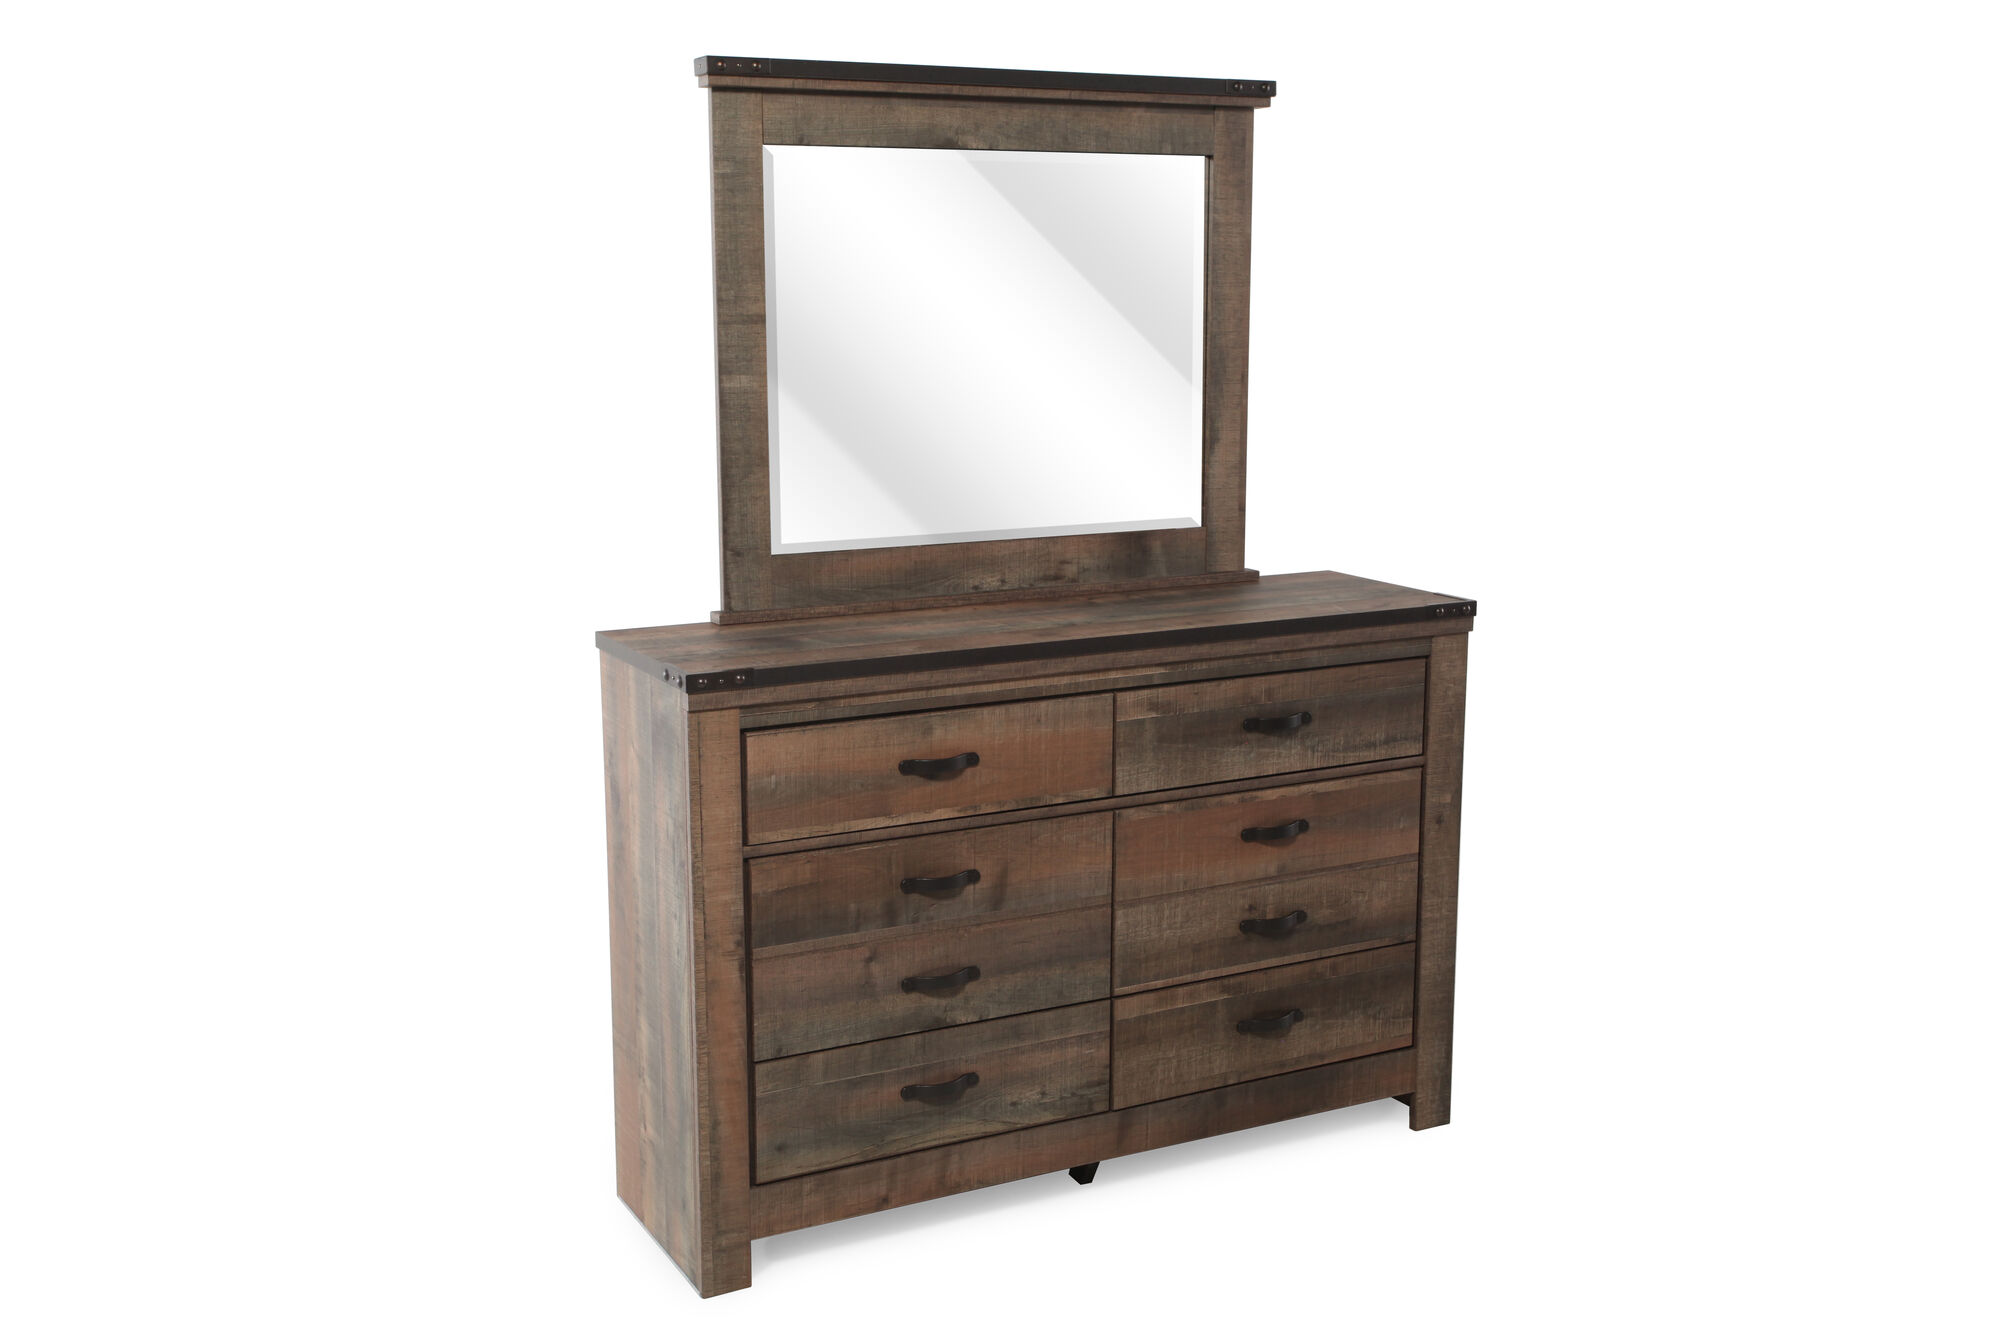 Six drawer rustic farmhouse youth dresser and mirror in distressed brown mathis brothers furniture